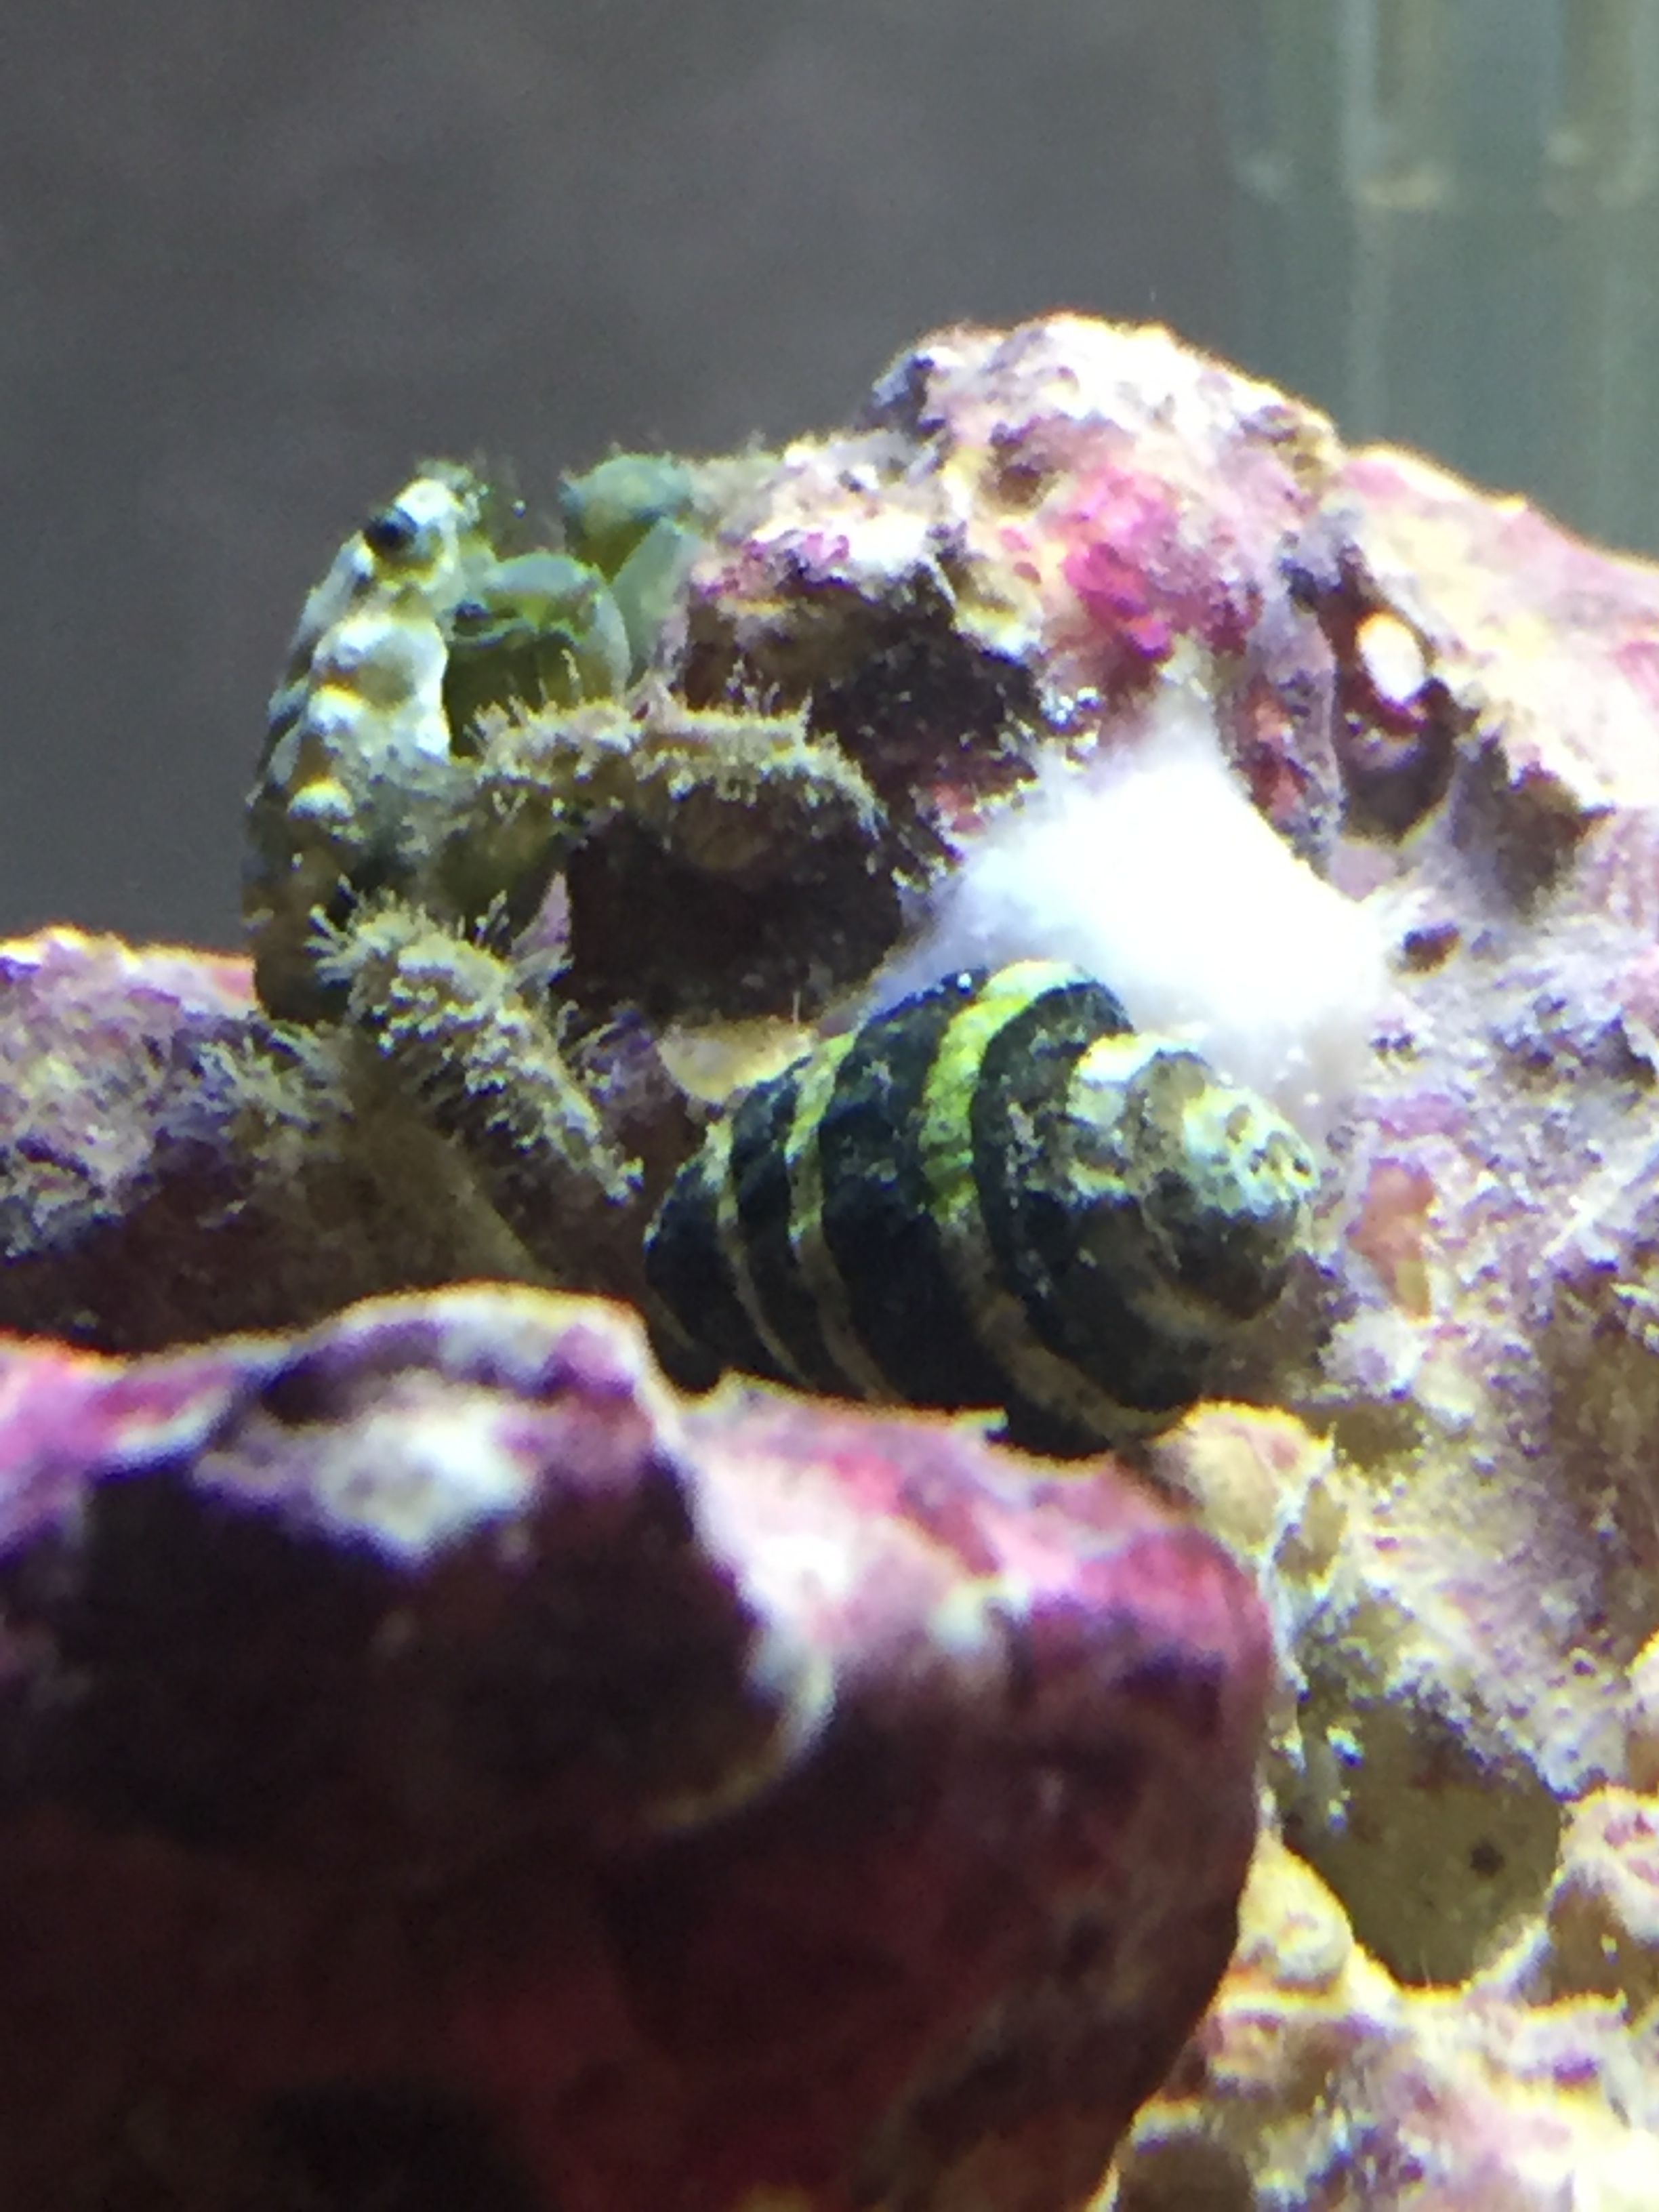 Emerald Crab Bumble Bee Snail And White Pineapple Sponge White Pineapple Crab Bumble Bee